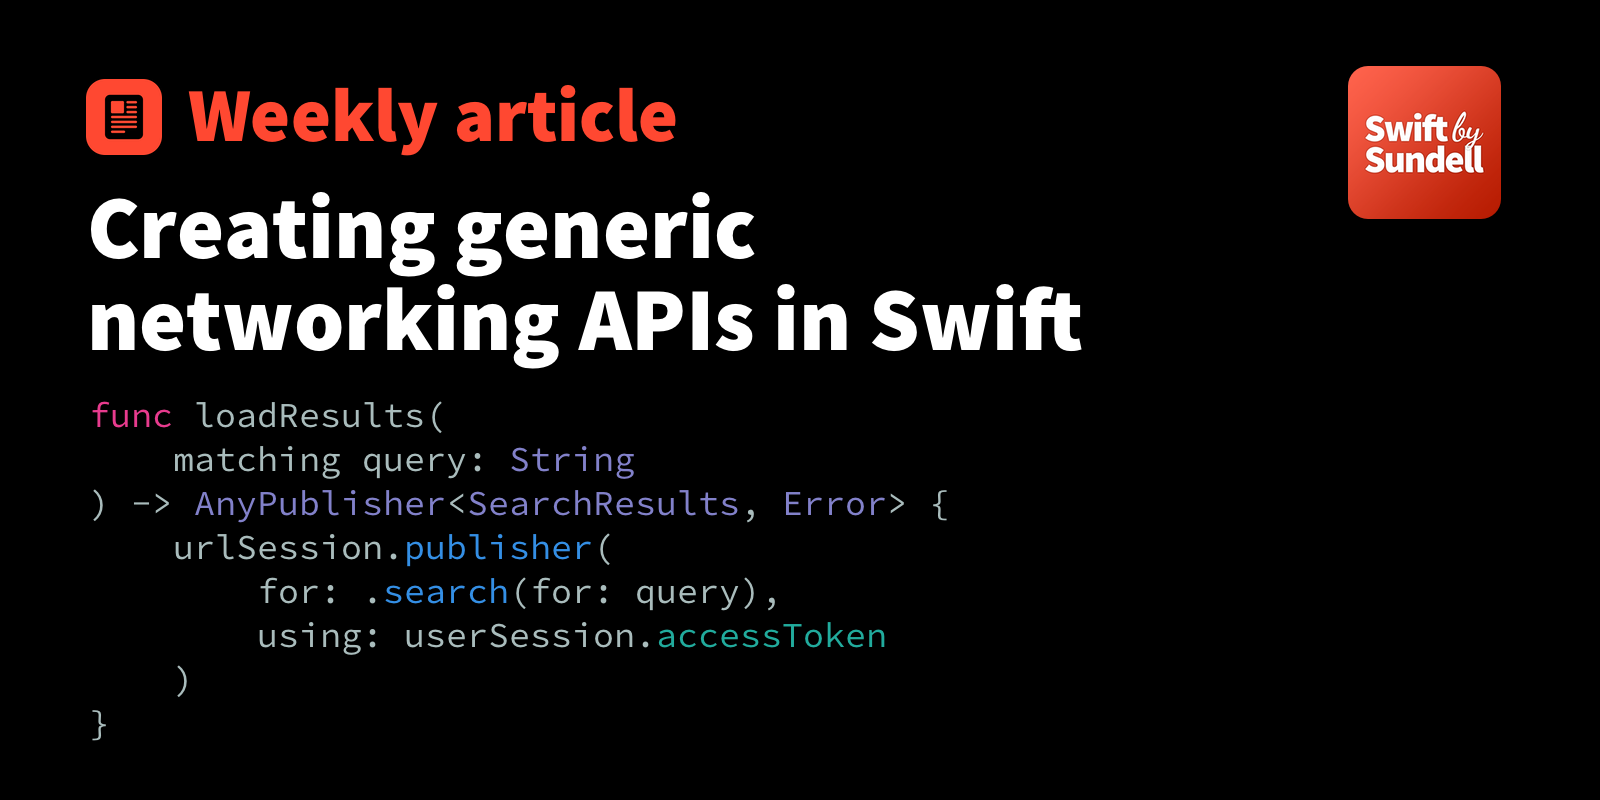 Creating generic networking APIs in Swift